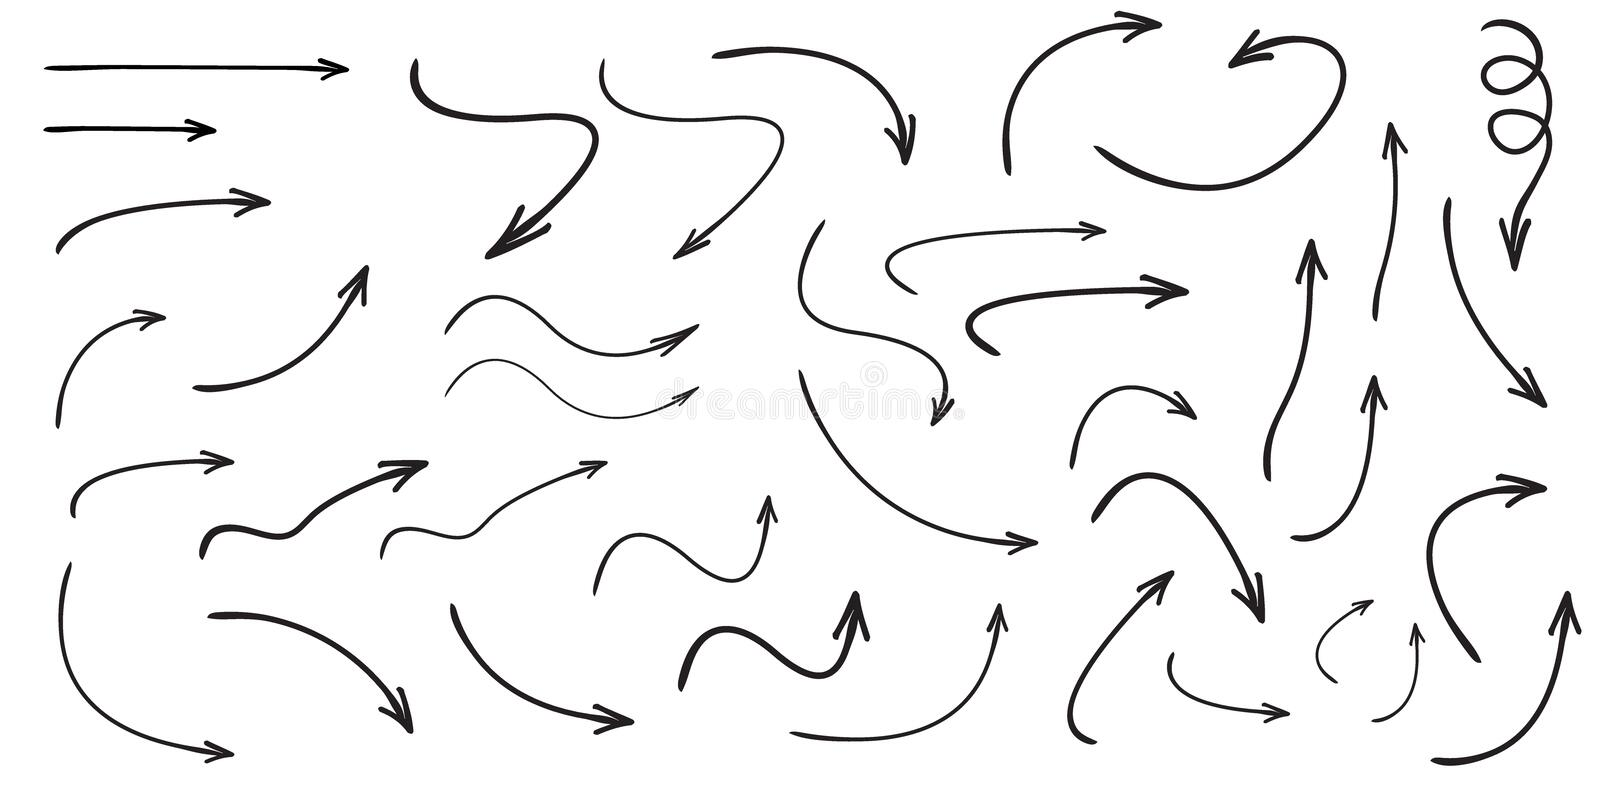 Set of vector curved arrows hand drawn. Sketch doodle style. vector illustration